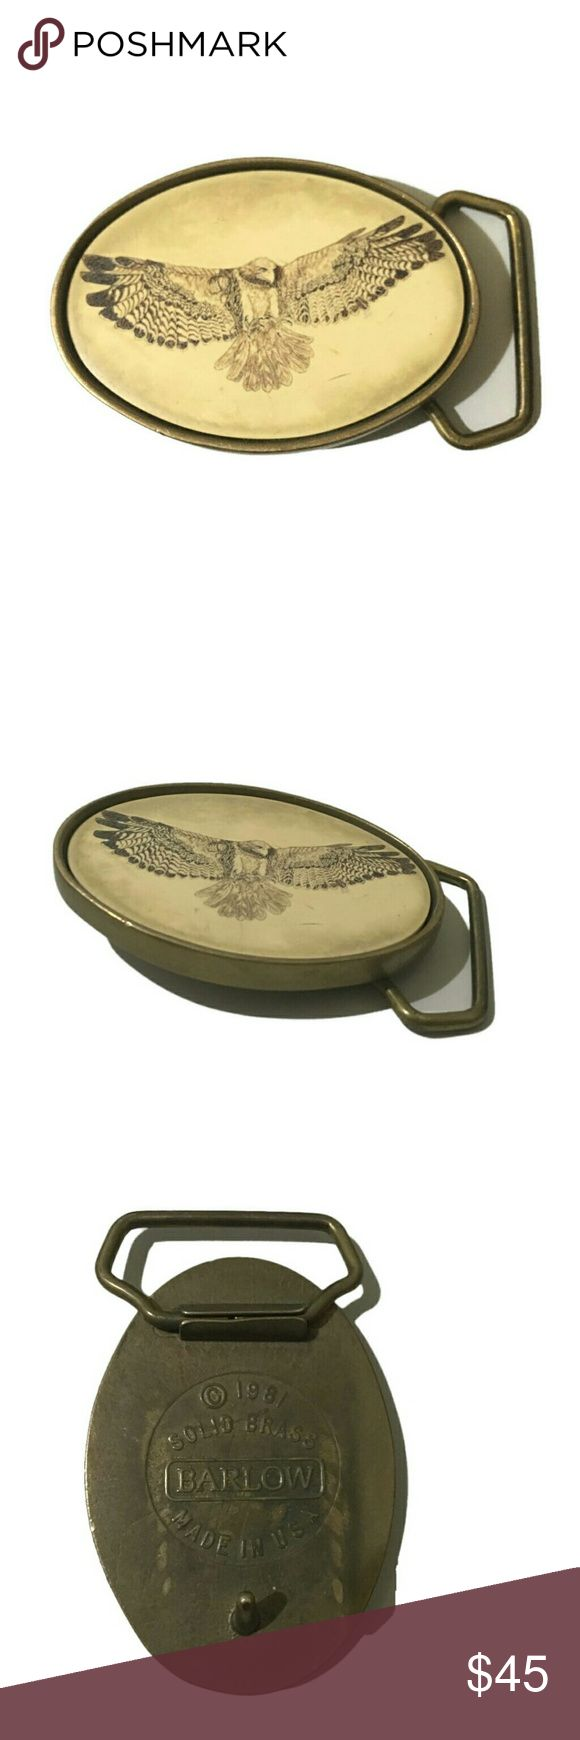 Belt Buckle Vintage, Rare Bird Belt Buckle This rare vintage belt buckle would be a great gift for that bohemian bird lover.   Oval Brass with eagle   Good vintage condition with some small scuffs and scrapes Accessories Belts